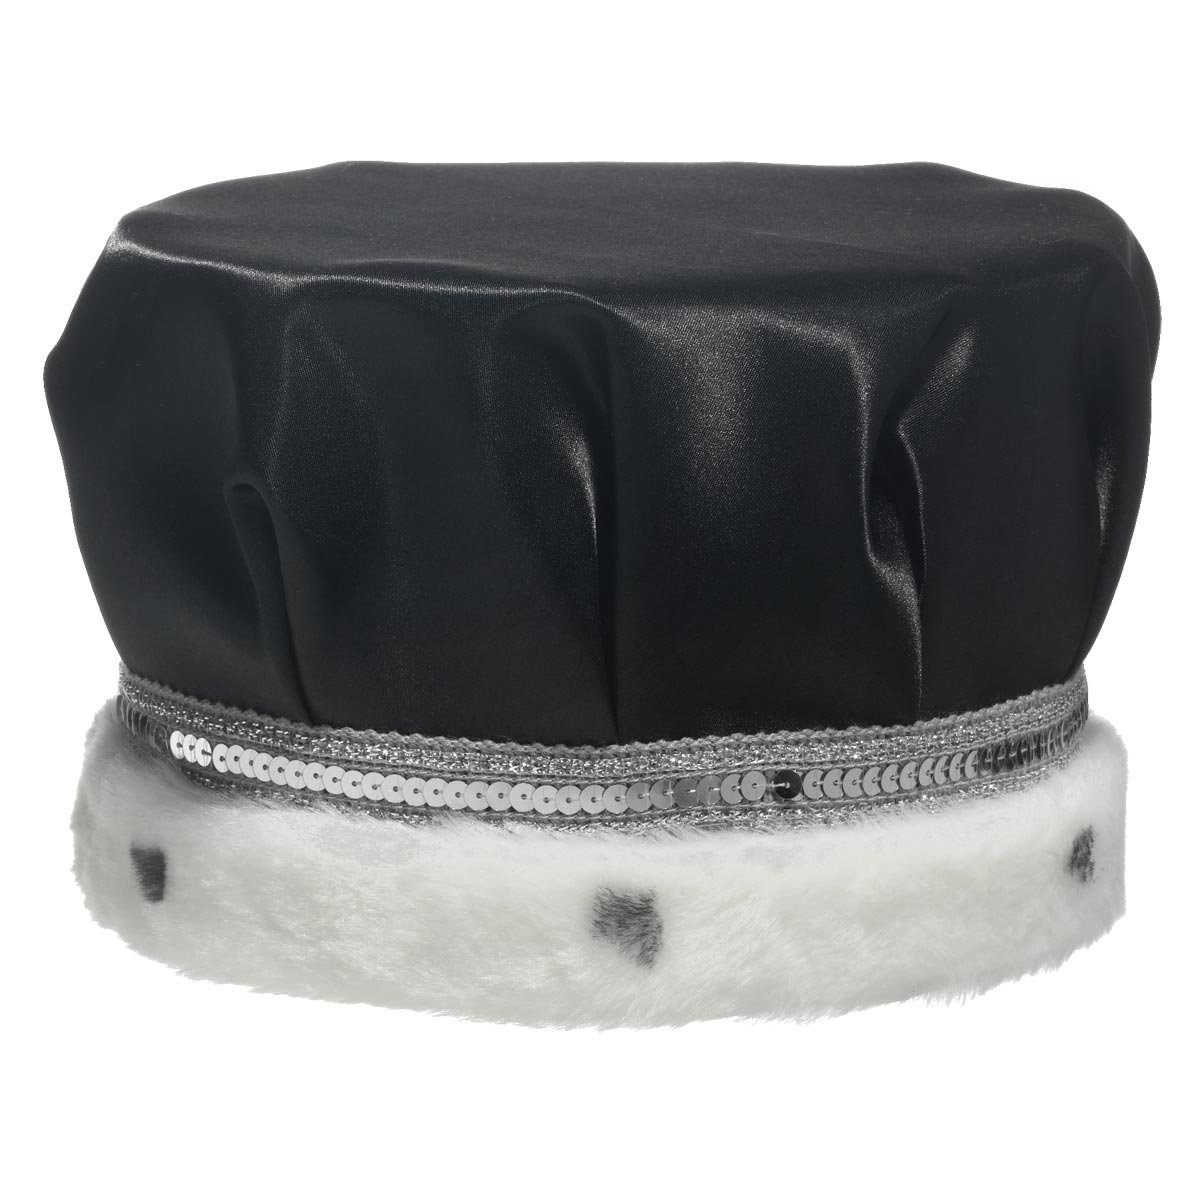 TCDesignerProducts Black Satin Crown with Silver Trim and Faux Fur by TCDesignerProducts